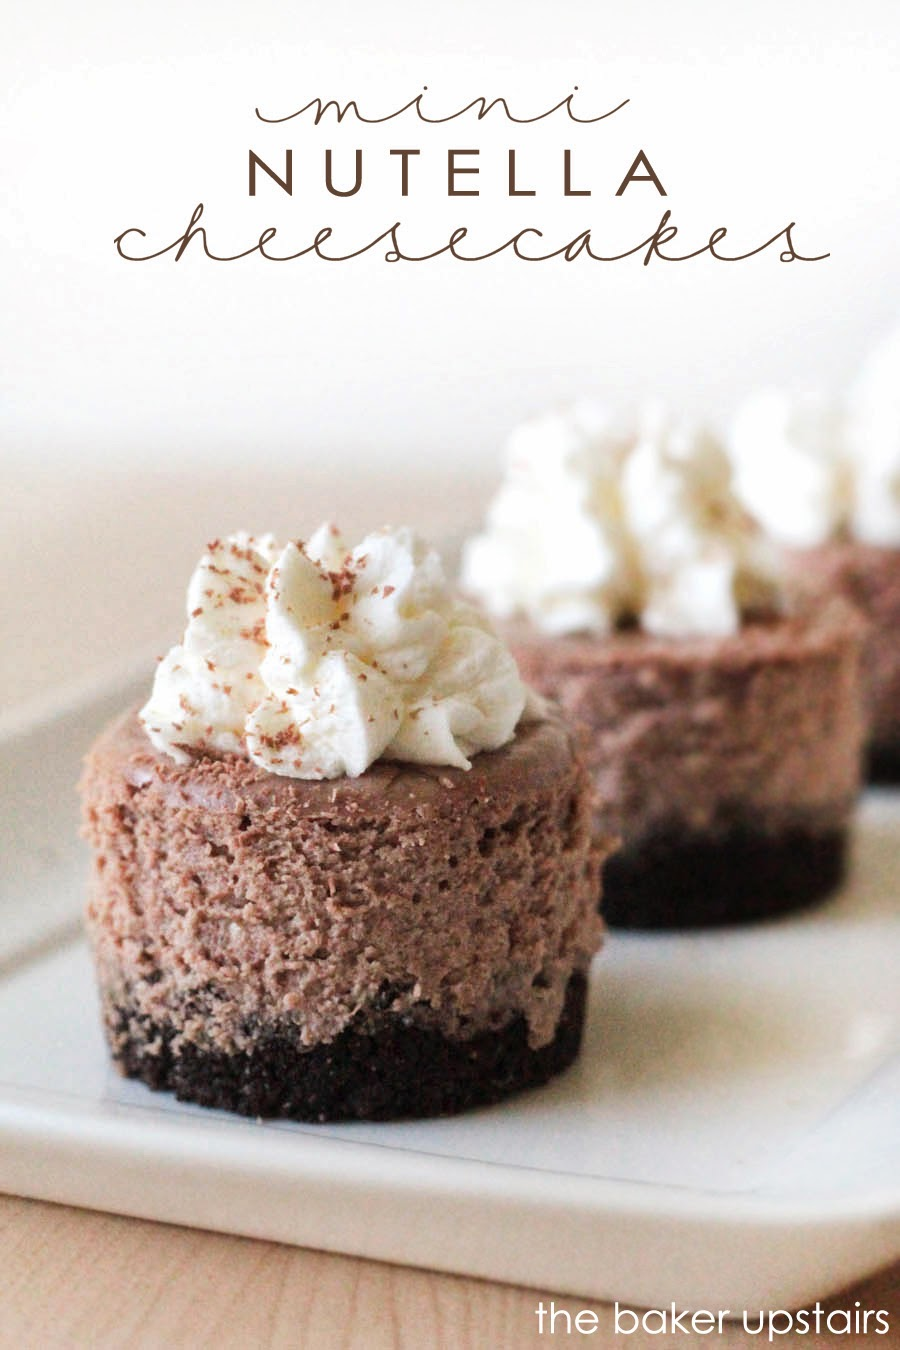 Mini nutella cheesecakes from The Baker Upstairs. Rich, delicious, and silky smooth, these cheesecakes make a beautiful and elegant dessert for any special occasion!